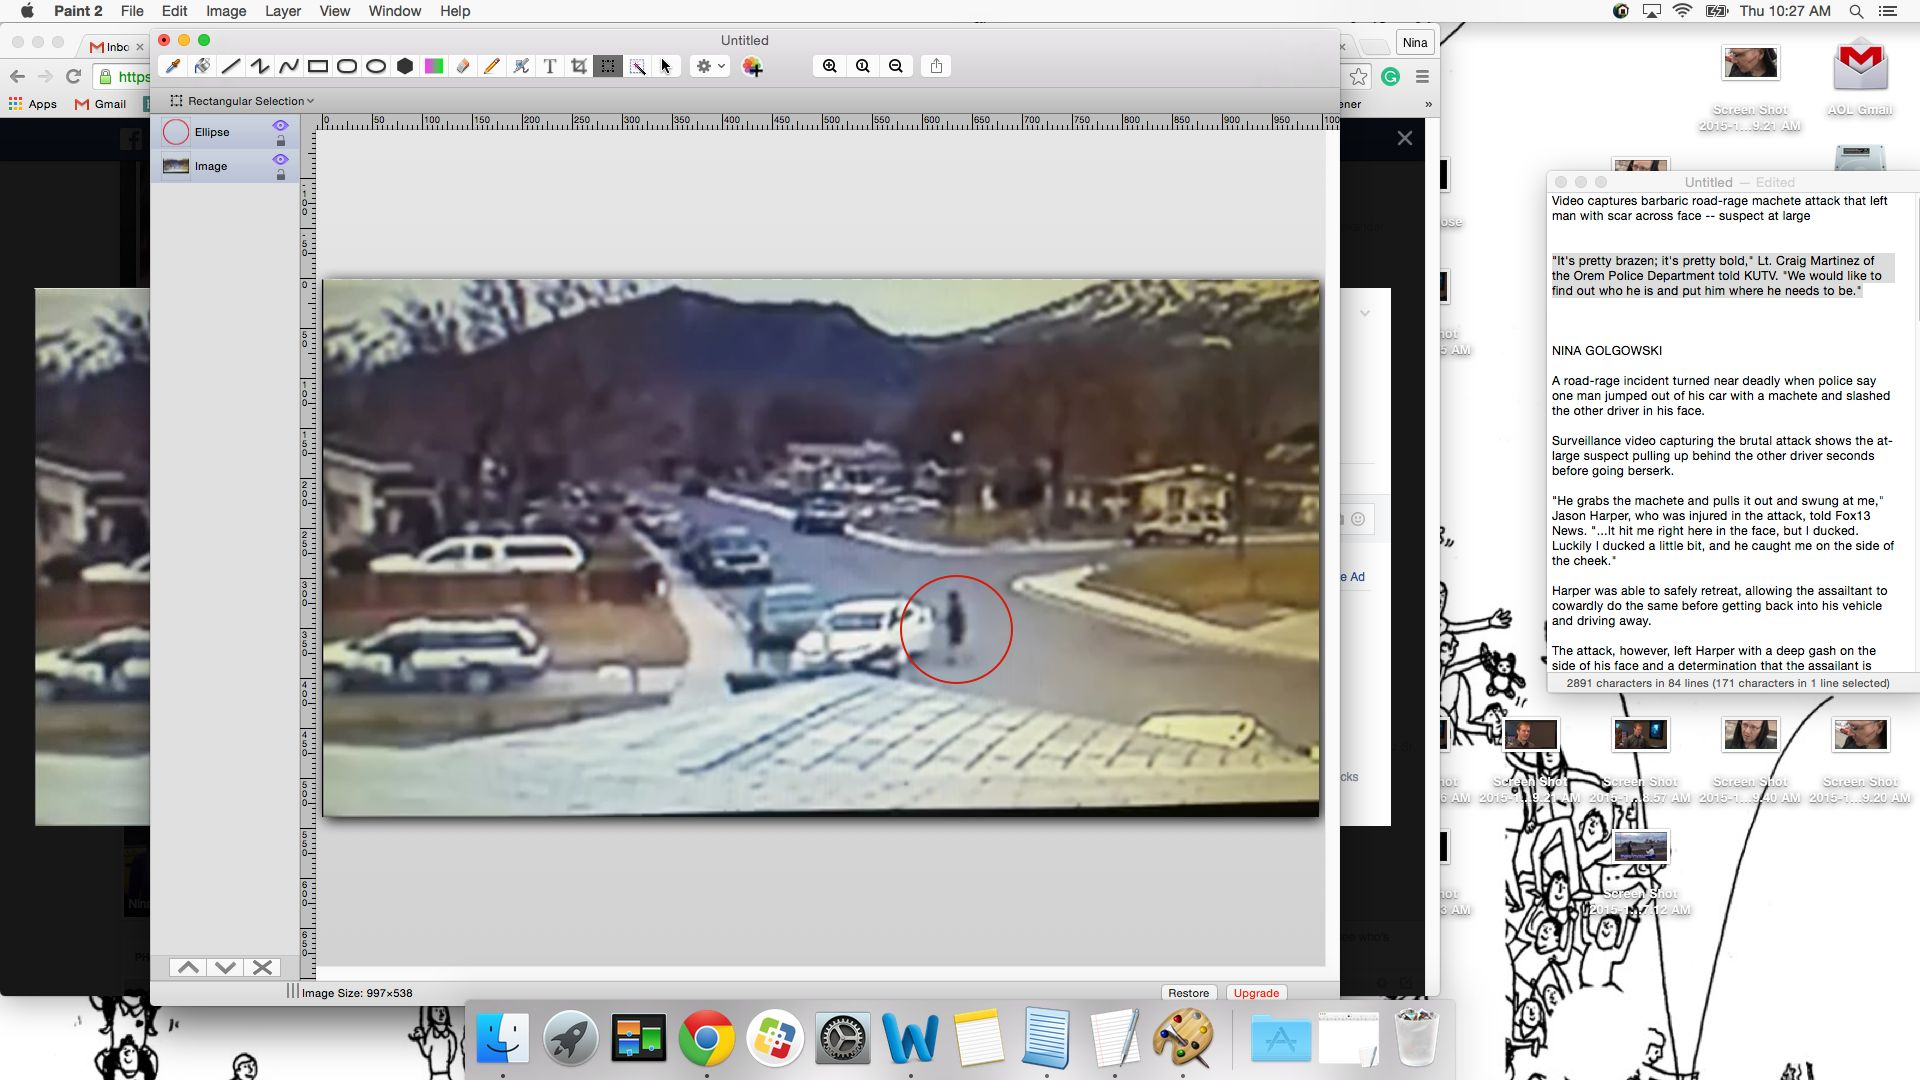 A road-rage suspect is seen circled in red, shortly after video appears to show him attacking a man with a machete.